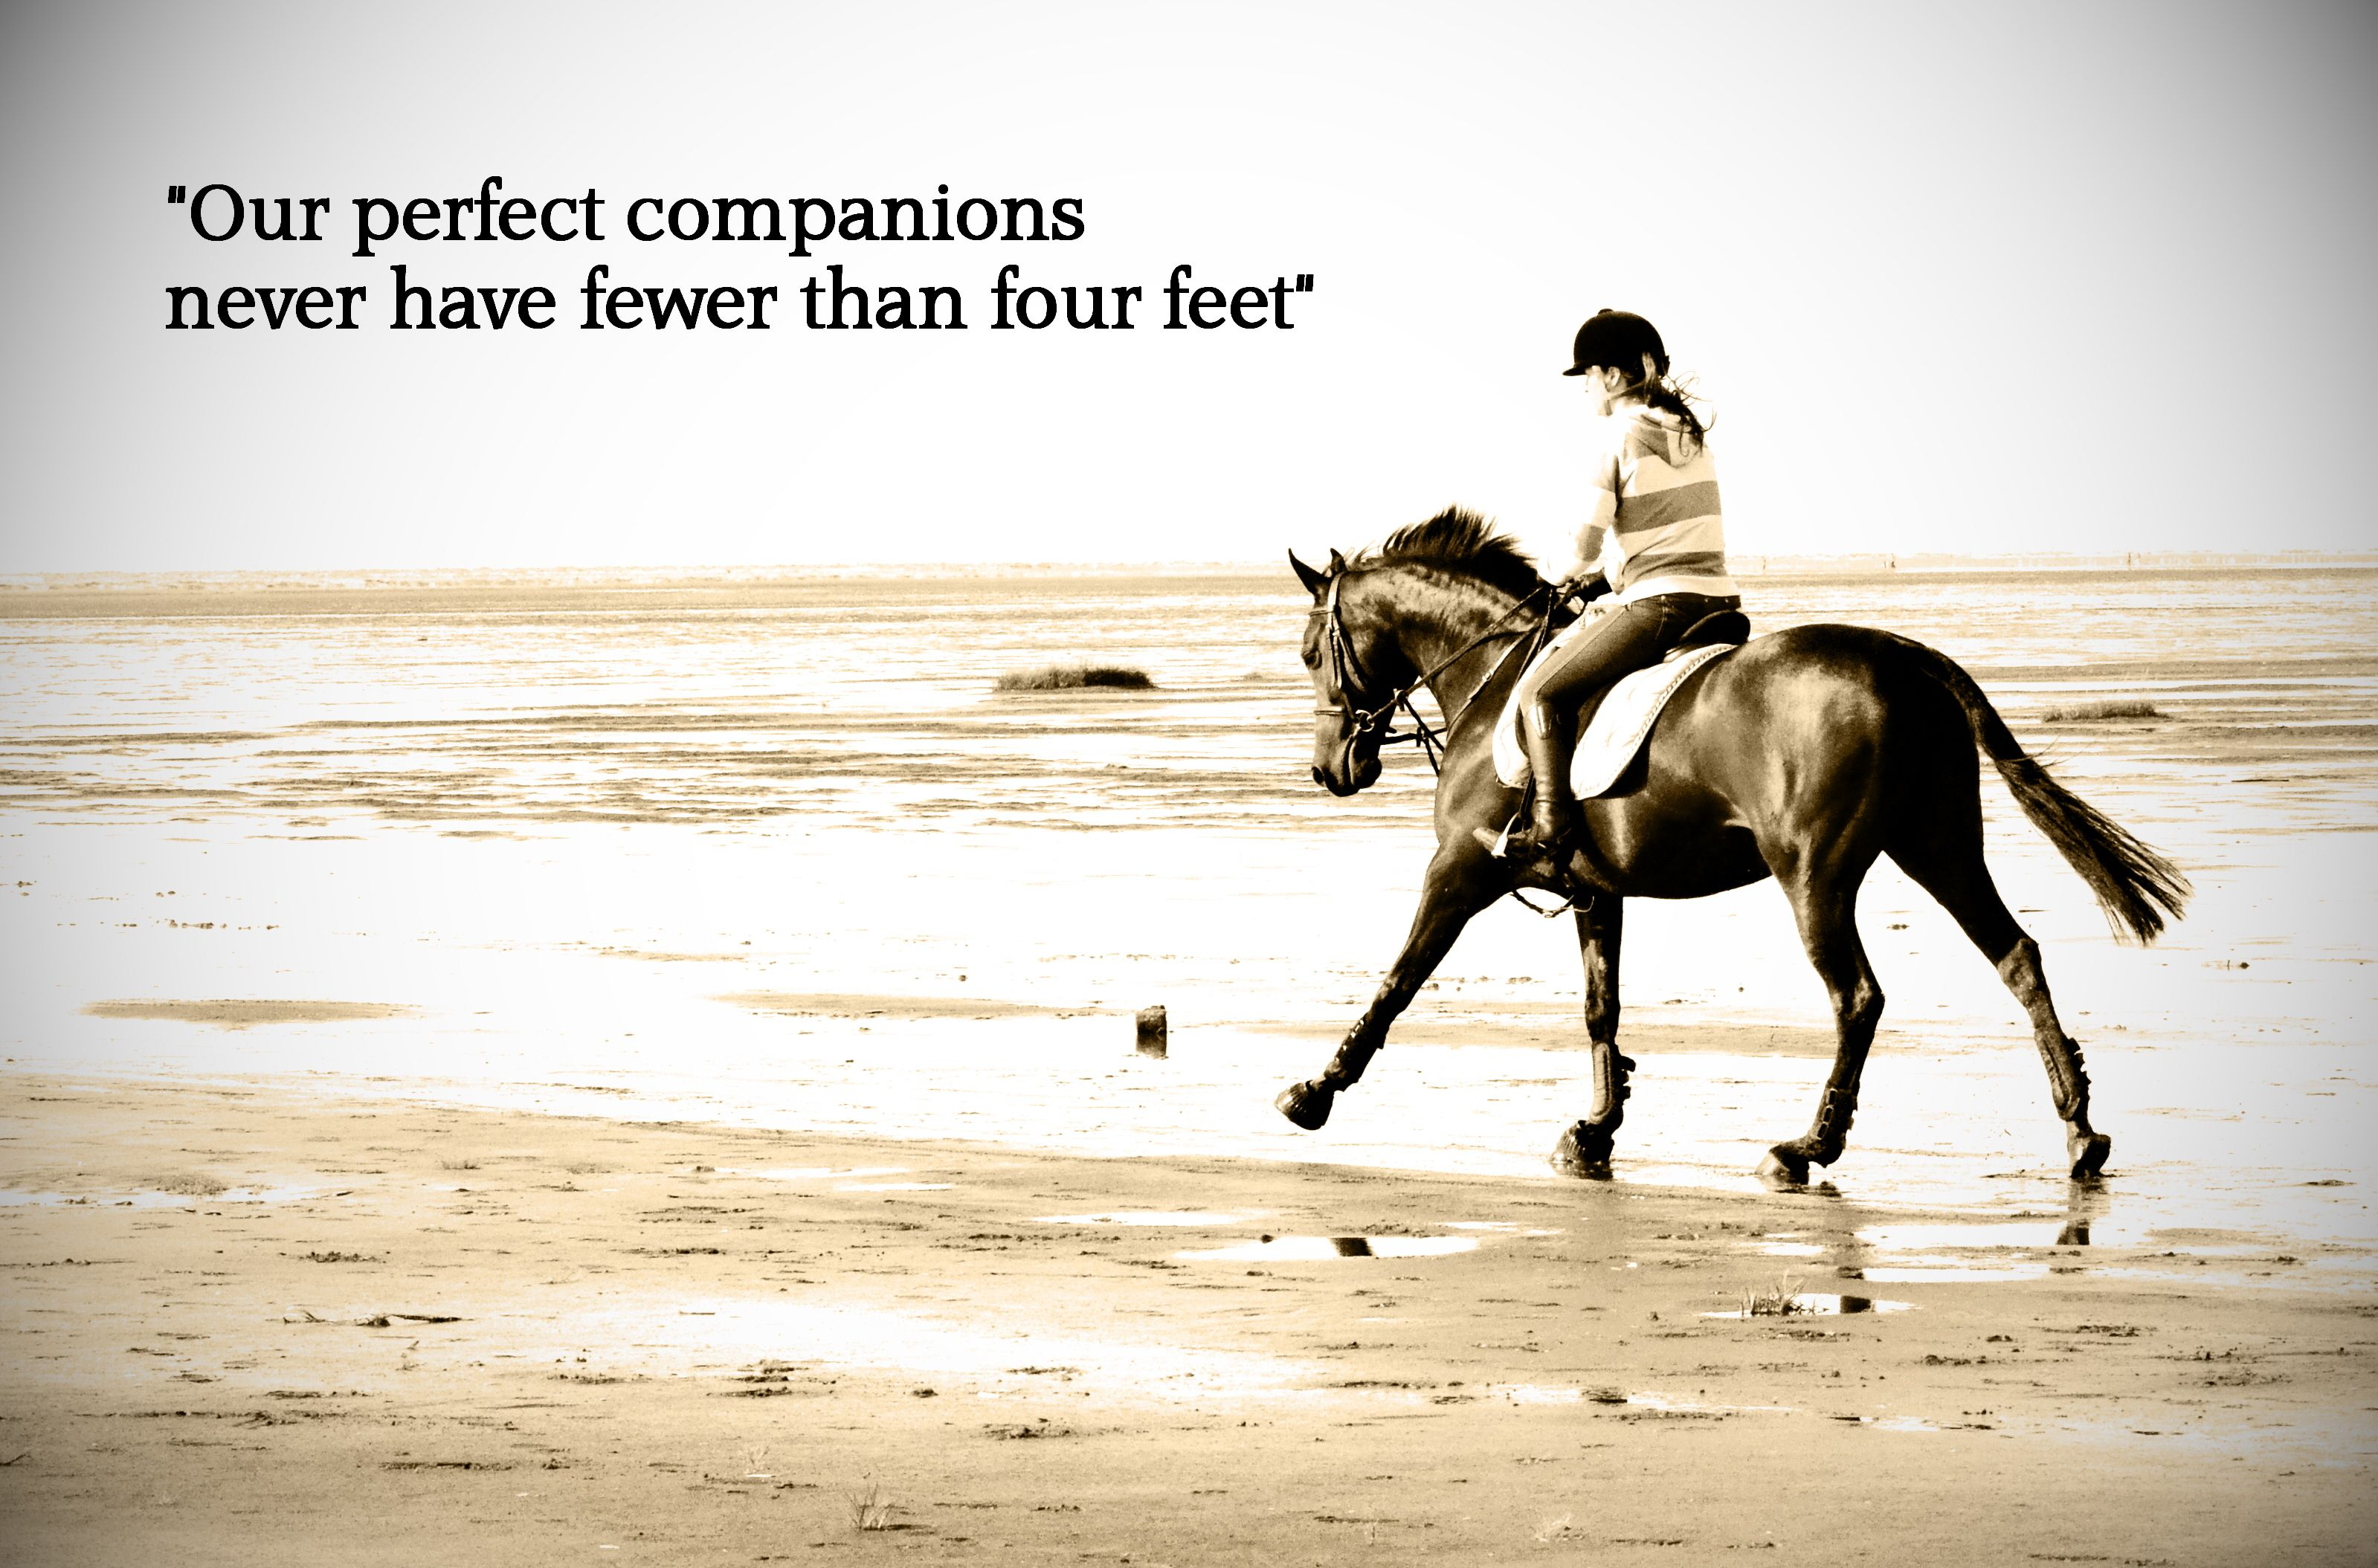 Famous Quotes Horse Beach Horse Riding Horse Riding Quotes Horse Quotes Funny Horse Pictures